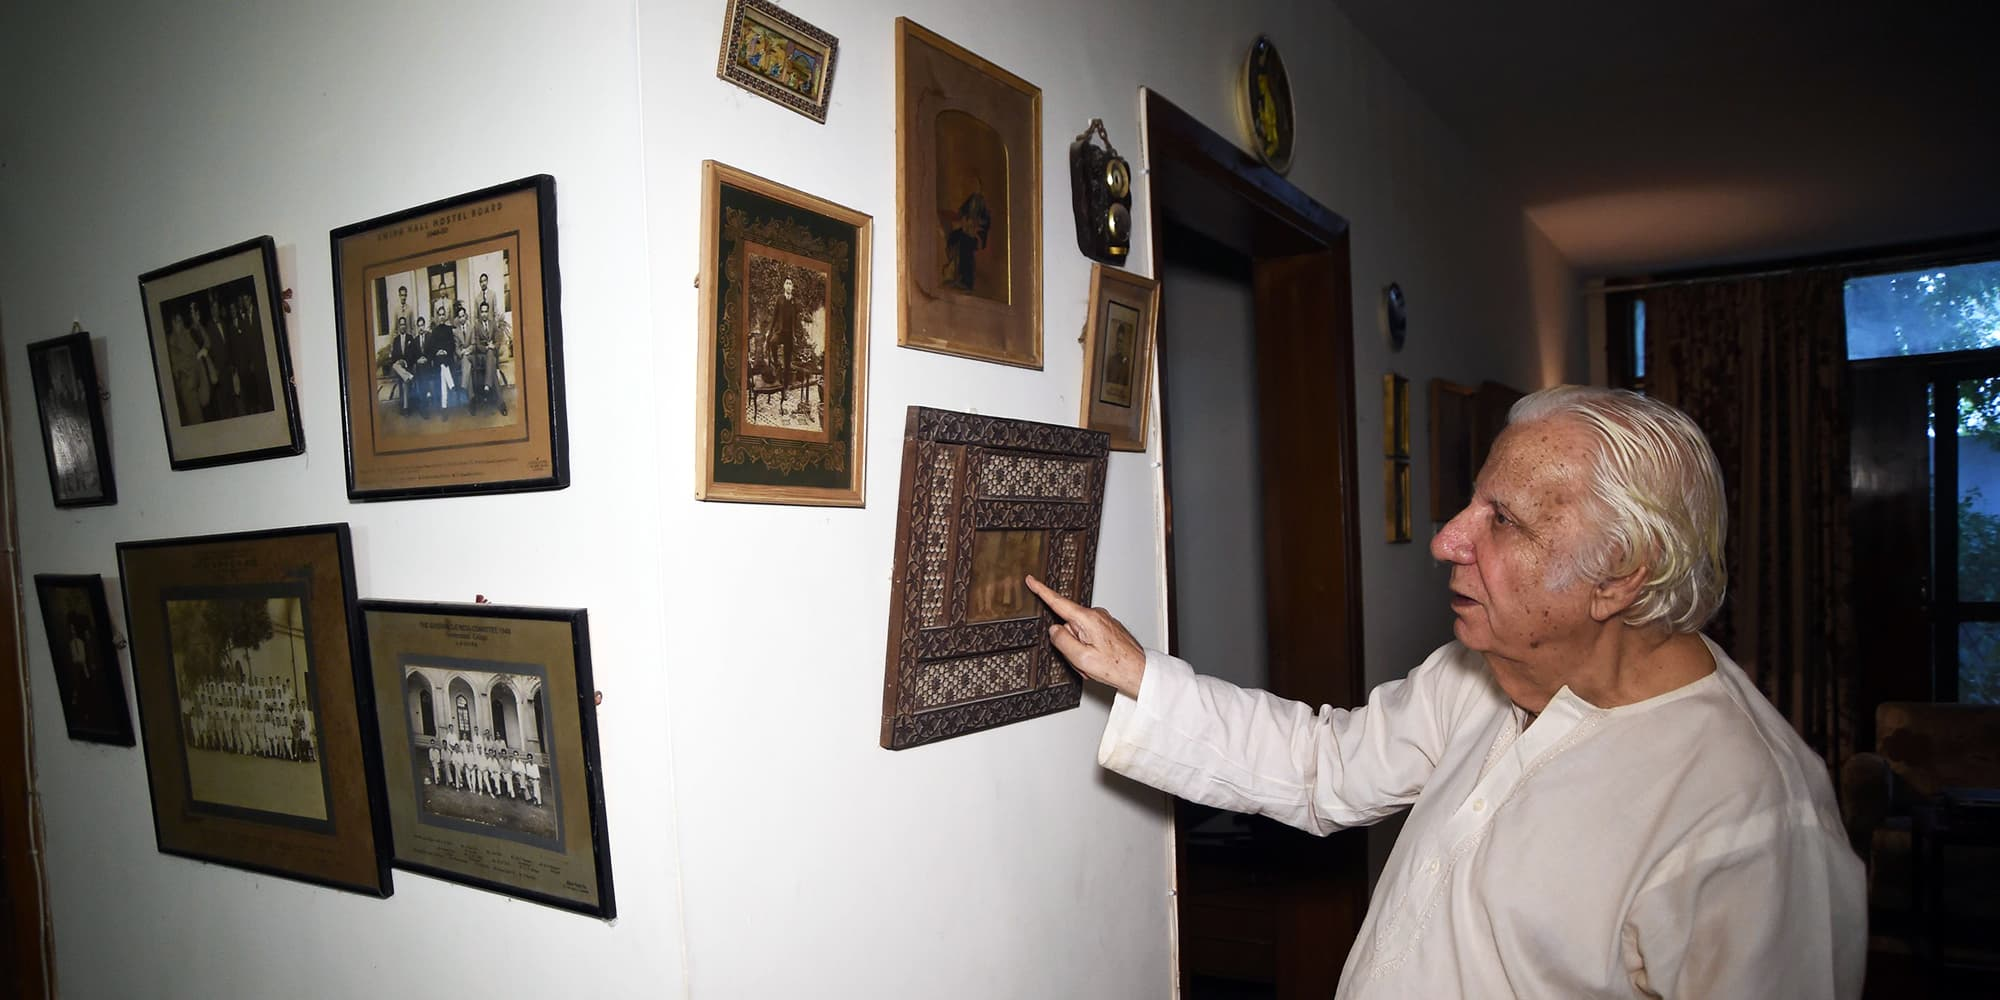 Saeed Hasan Khan displays old photos in Karachi. Khan was 17 years old, trapped in east Punjab in September of 1947 as the killing continued. — AFP